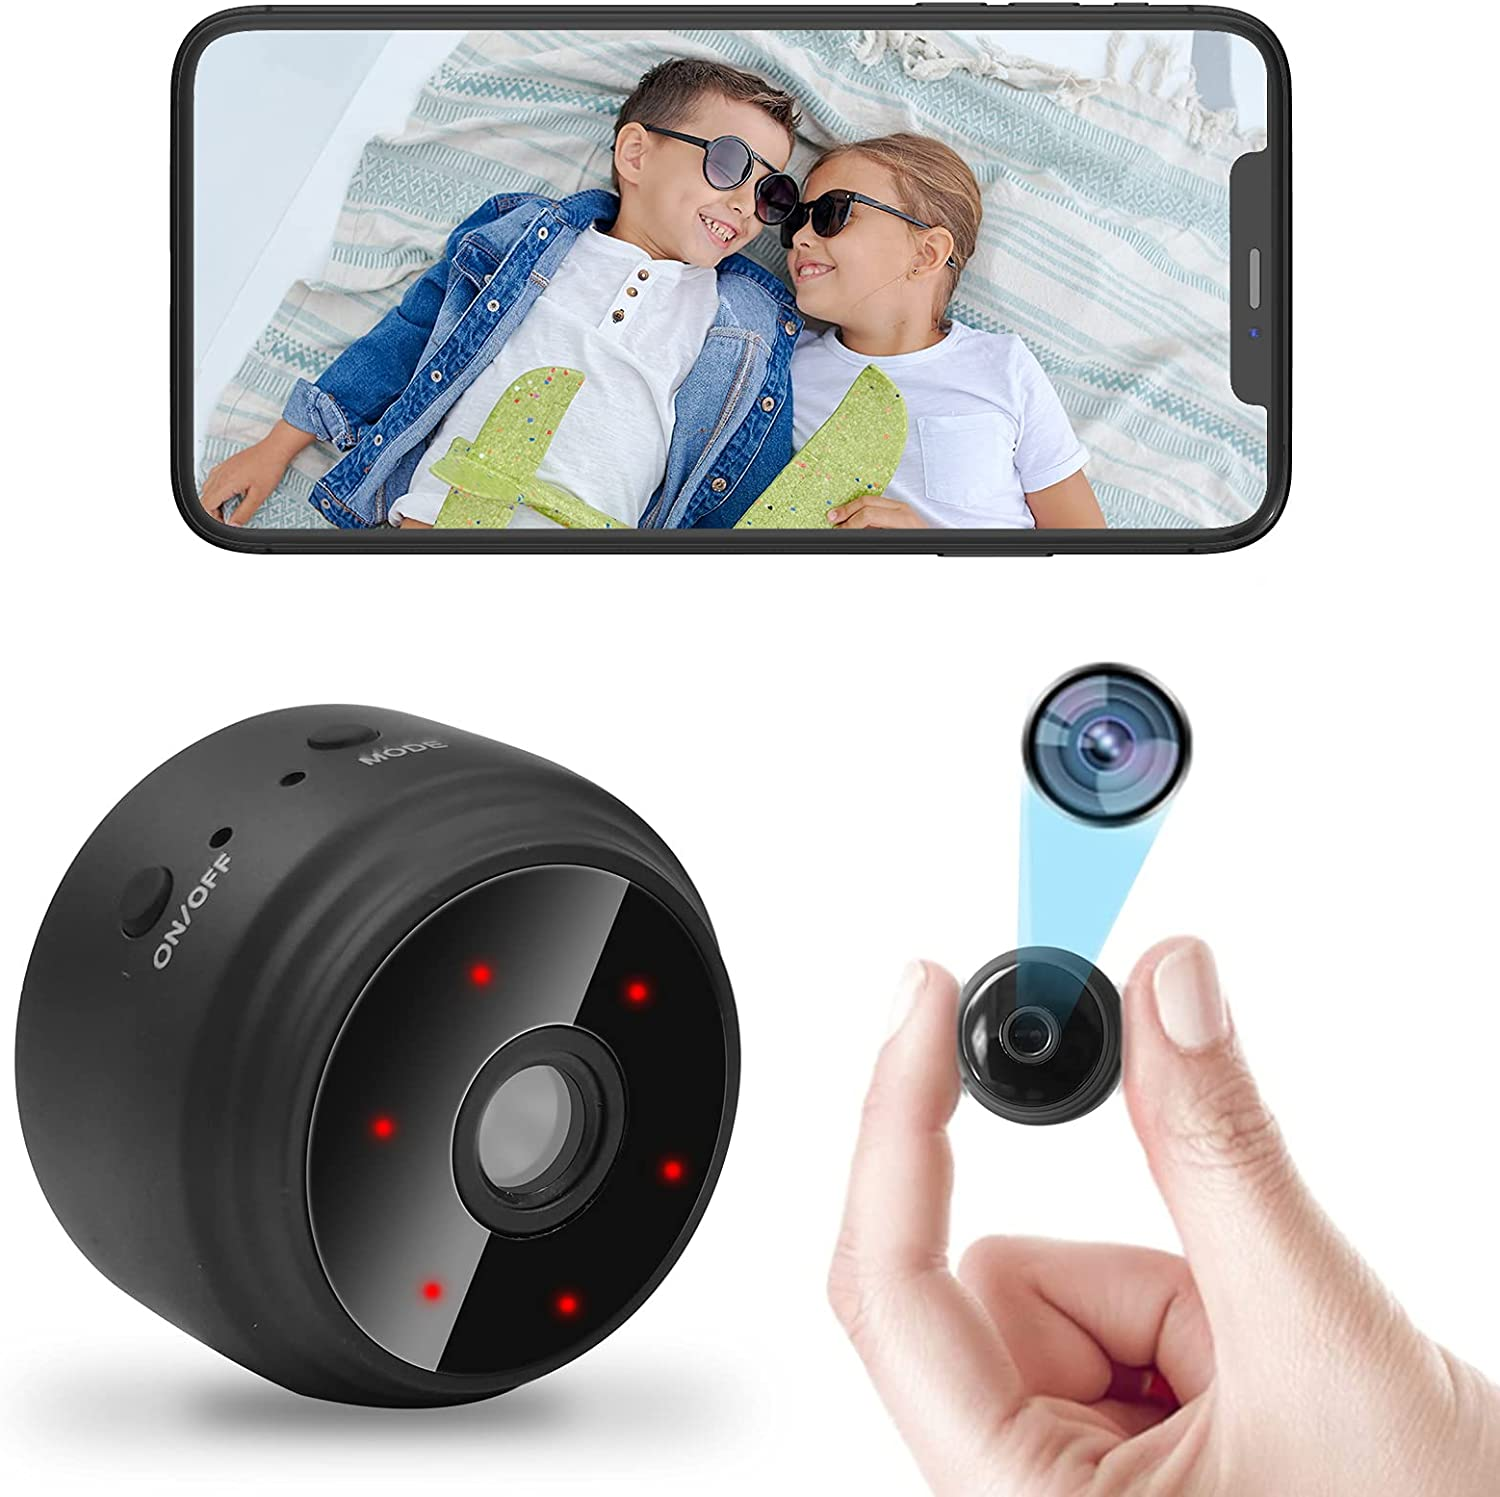 Spy Camera, EEOUK WiFi Mobile Mini Portable Camera HD 1080P for Home Security Pet Surveillance Video Night Vision and Android iOS Compatible